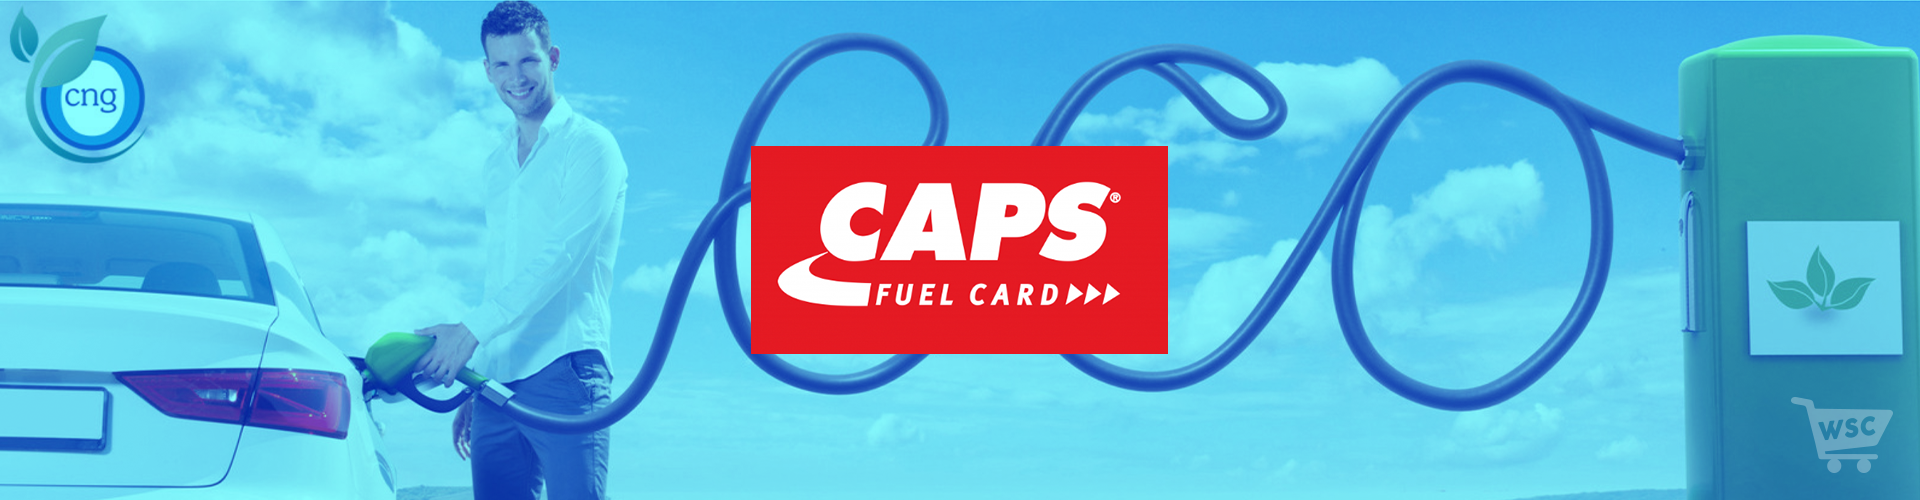 Capscard Fuel Card g&v